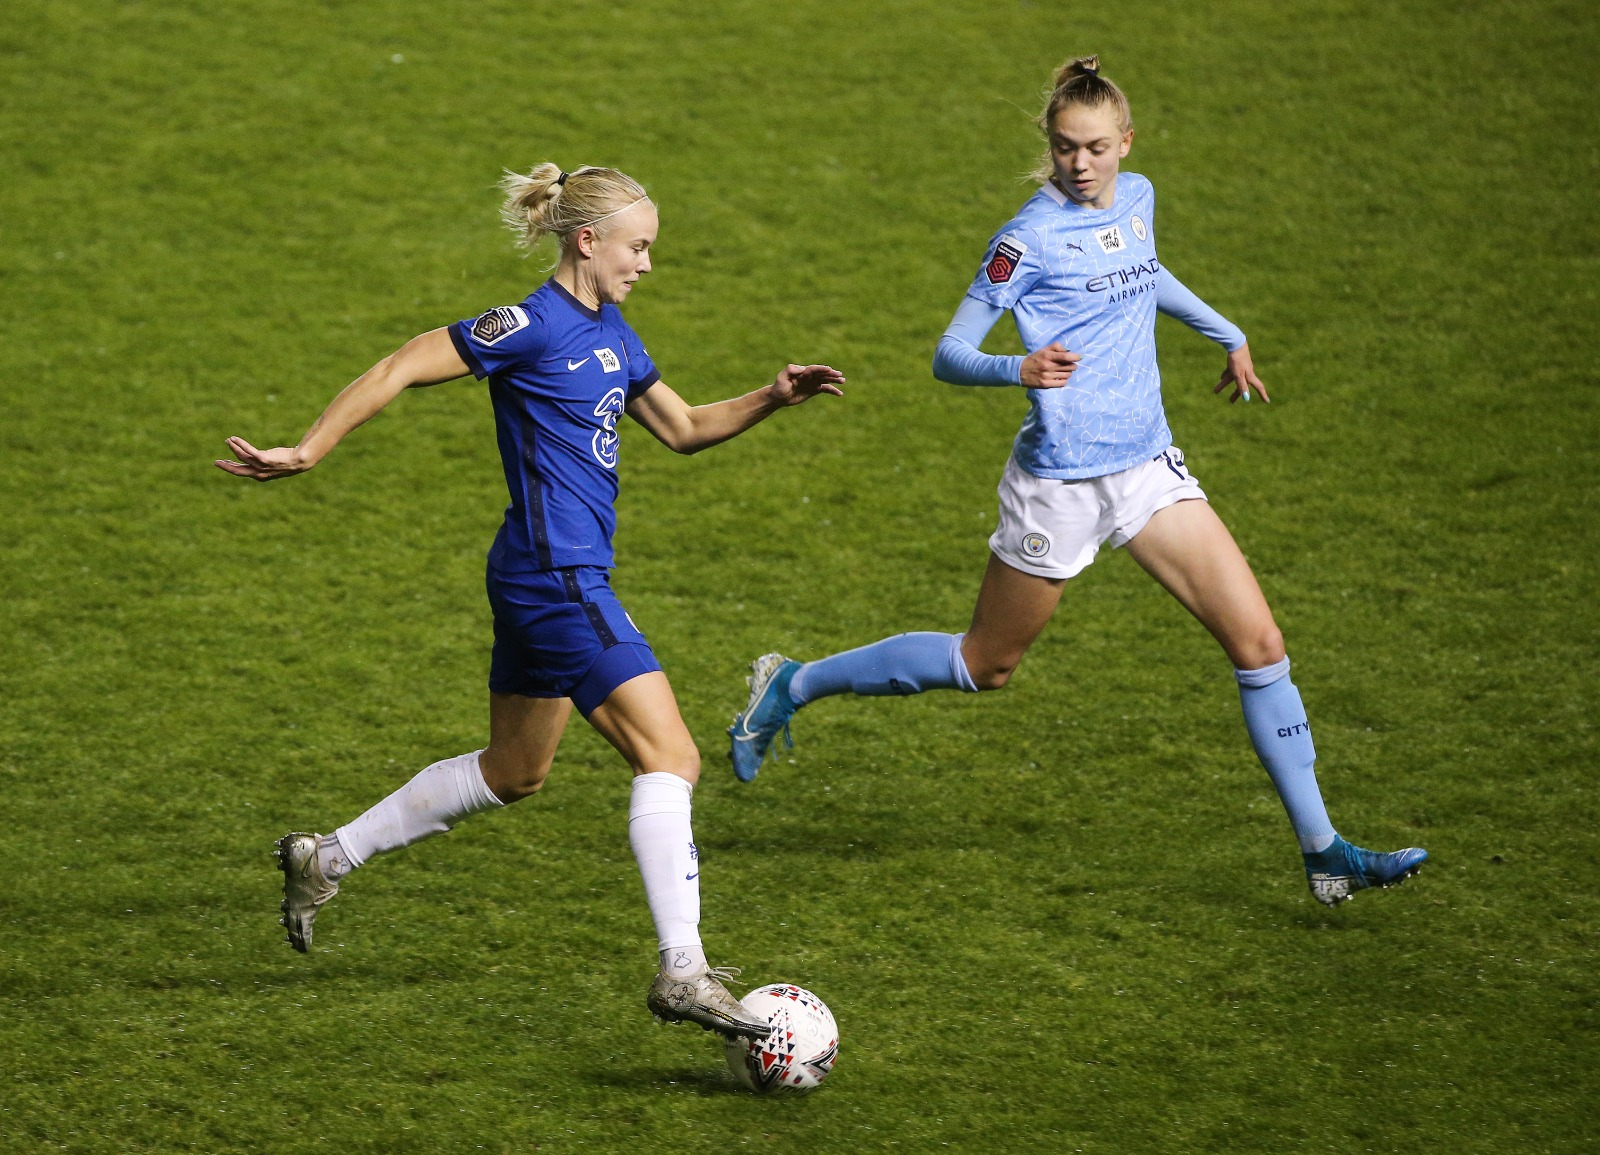 Mahon: We won't dwell on Conti Cup setback